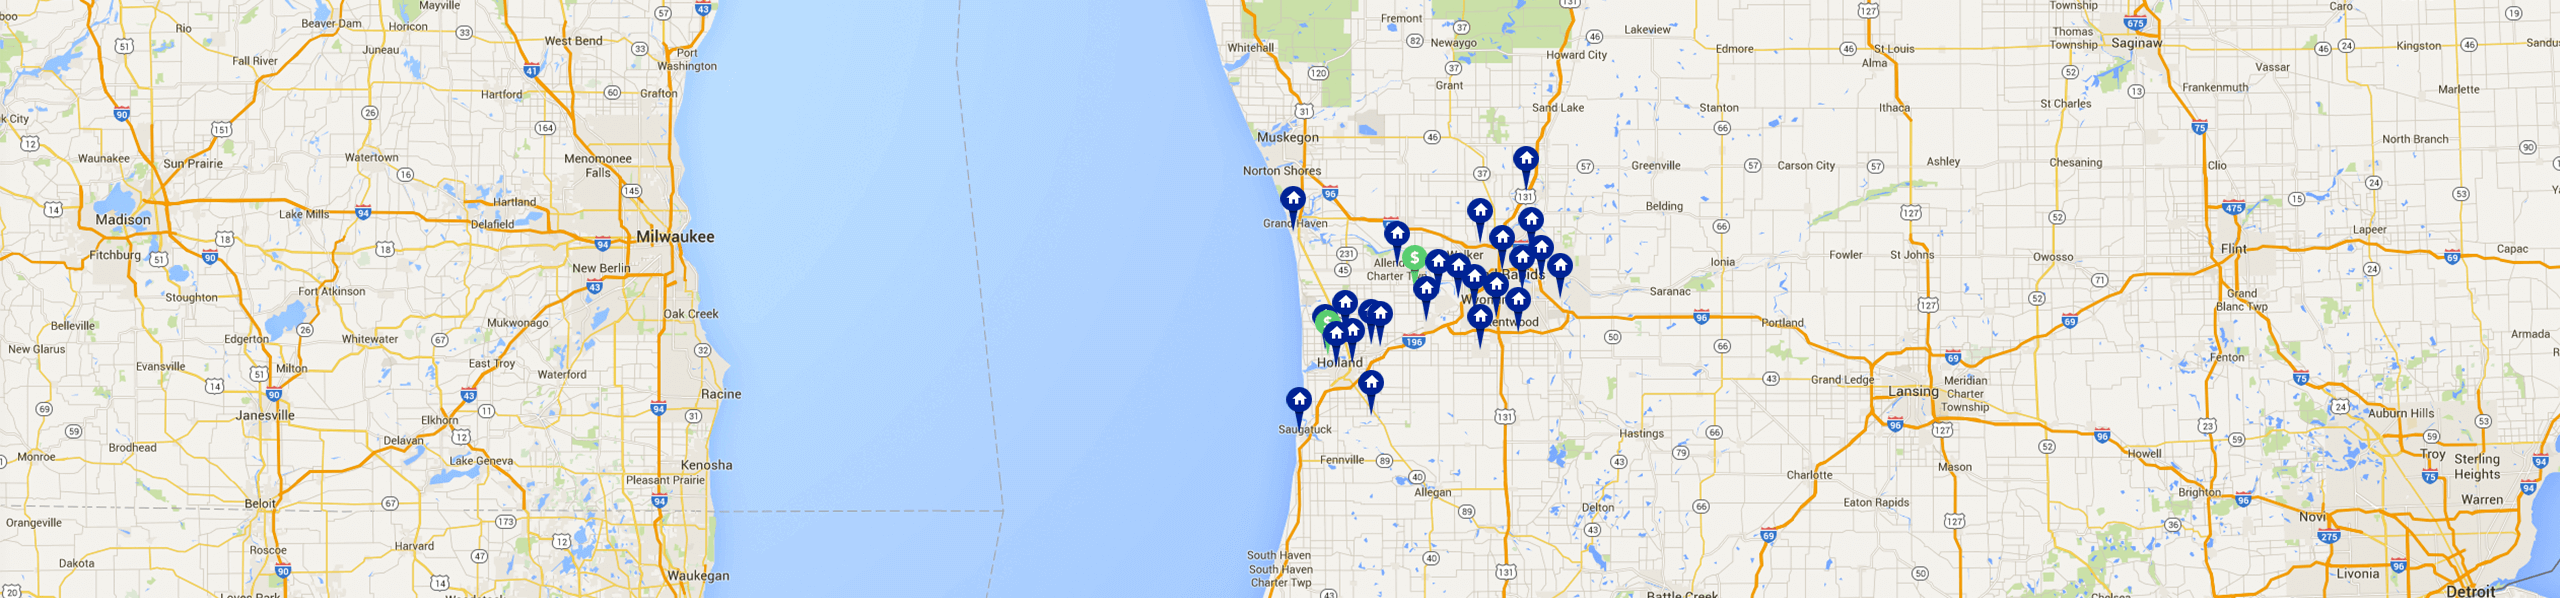 Personal Home Macatawa Bank Headquartered In West Michigan - Map of all us bank locations